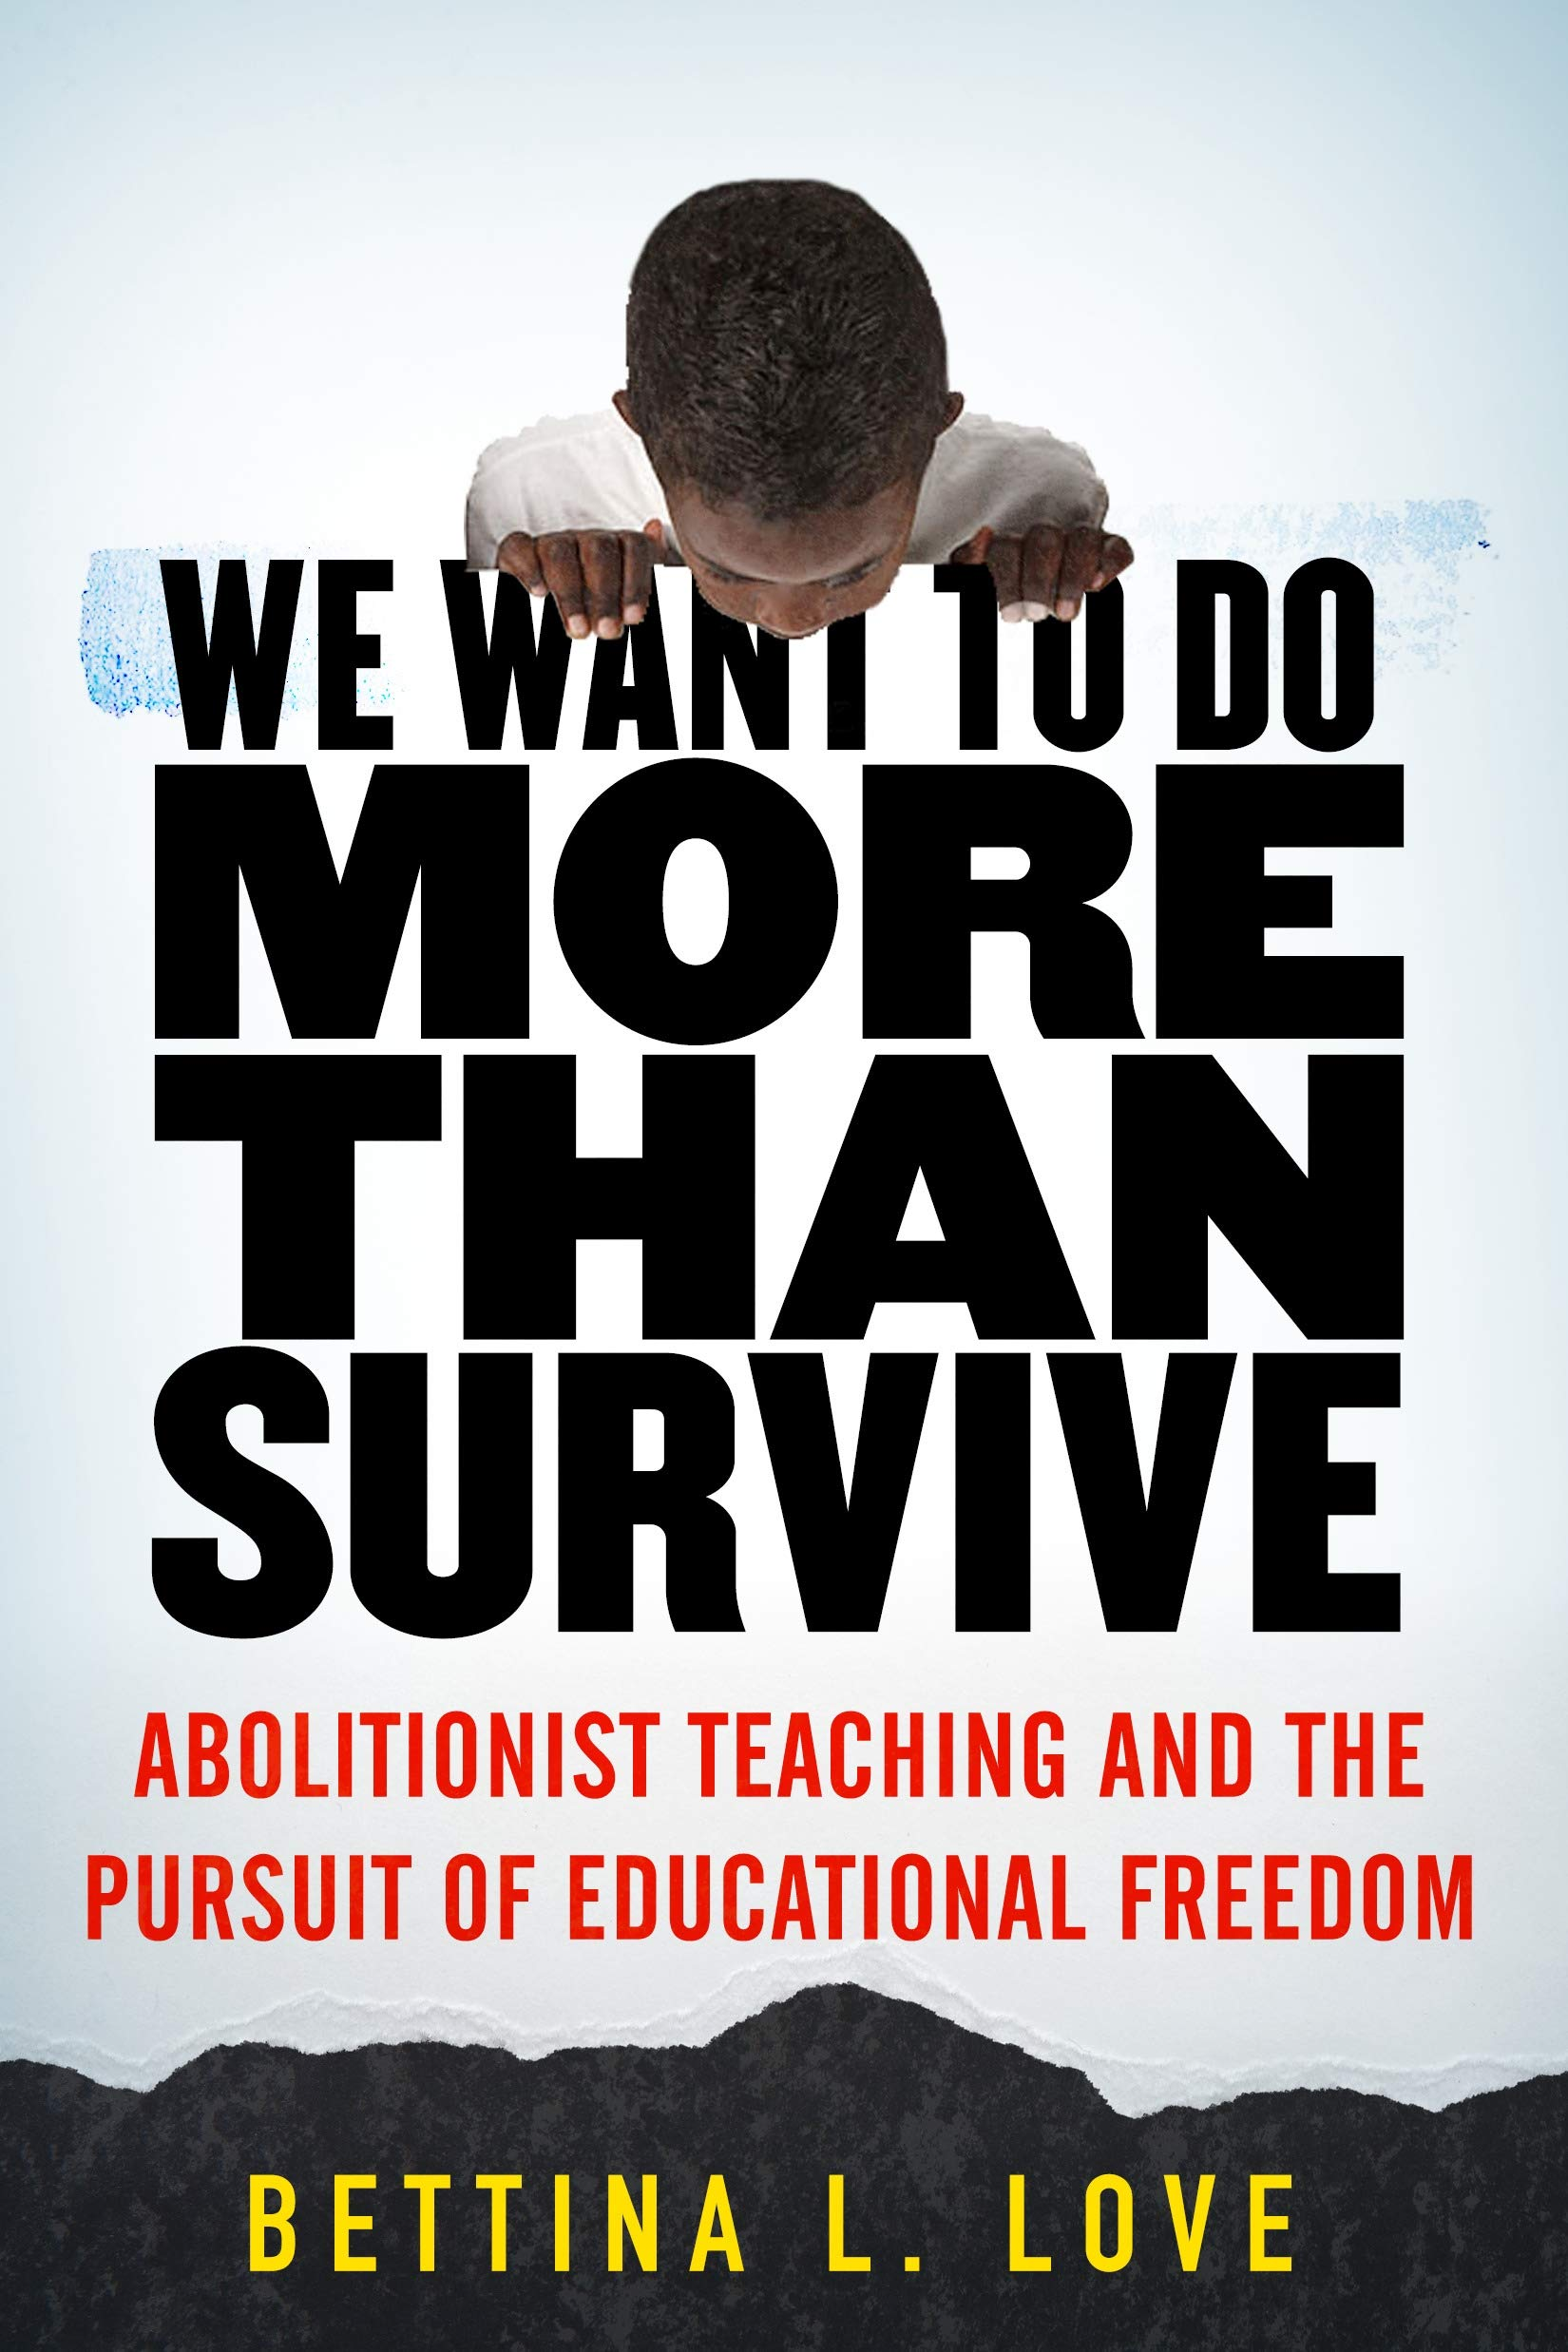 We Want to Do More Than Survive: Abolitionist Teaching and the Pursuit of  Educational Freedom: Love, Bettina: 9780807069158: Amazon.com: Books